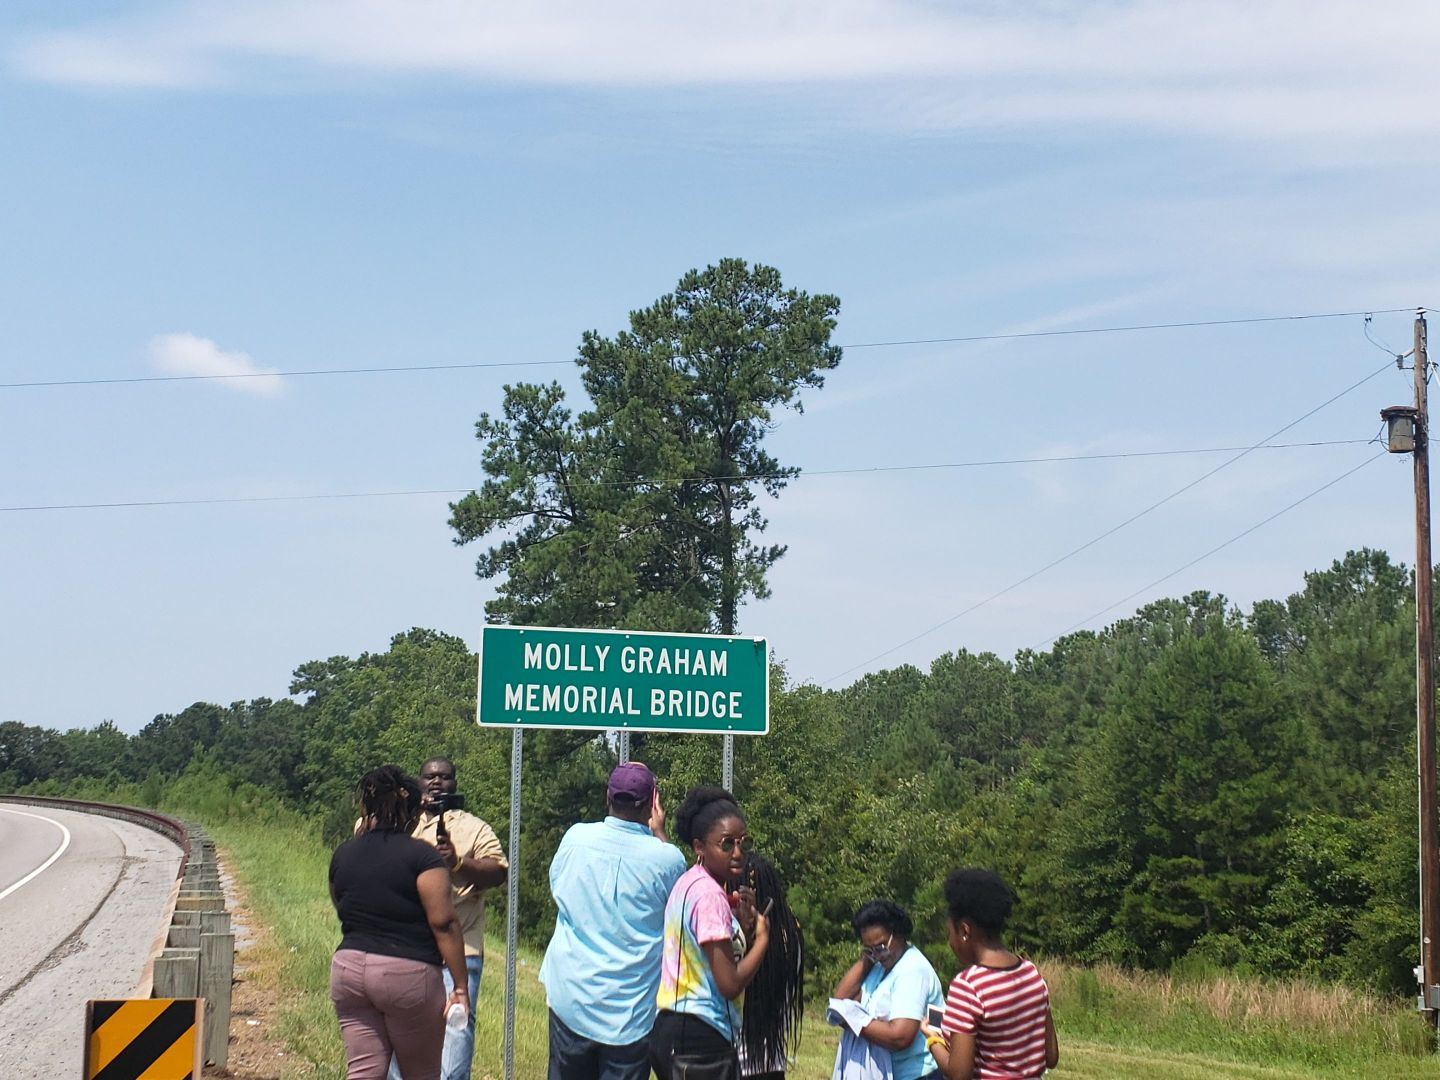 20190704_112408-1440x1080 South Carolina Bridge Dedicated to Molly Graham, African American Naturopathic Herb Doctor